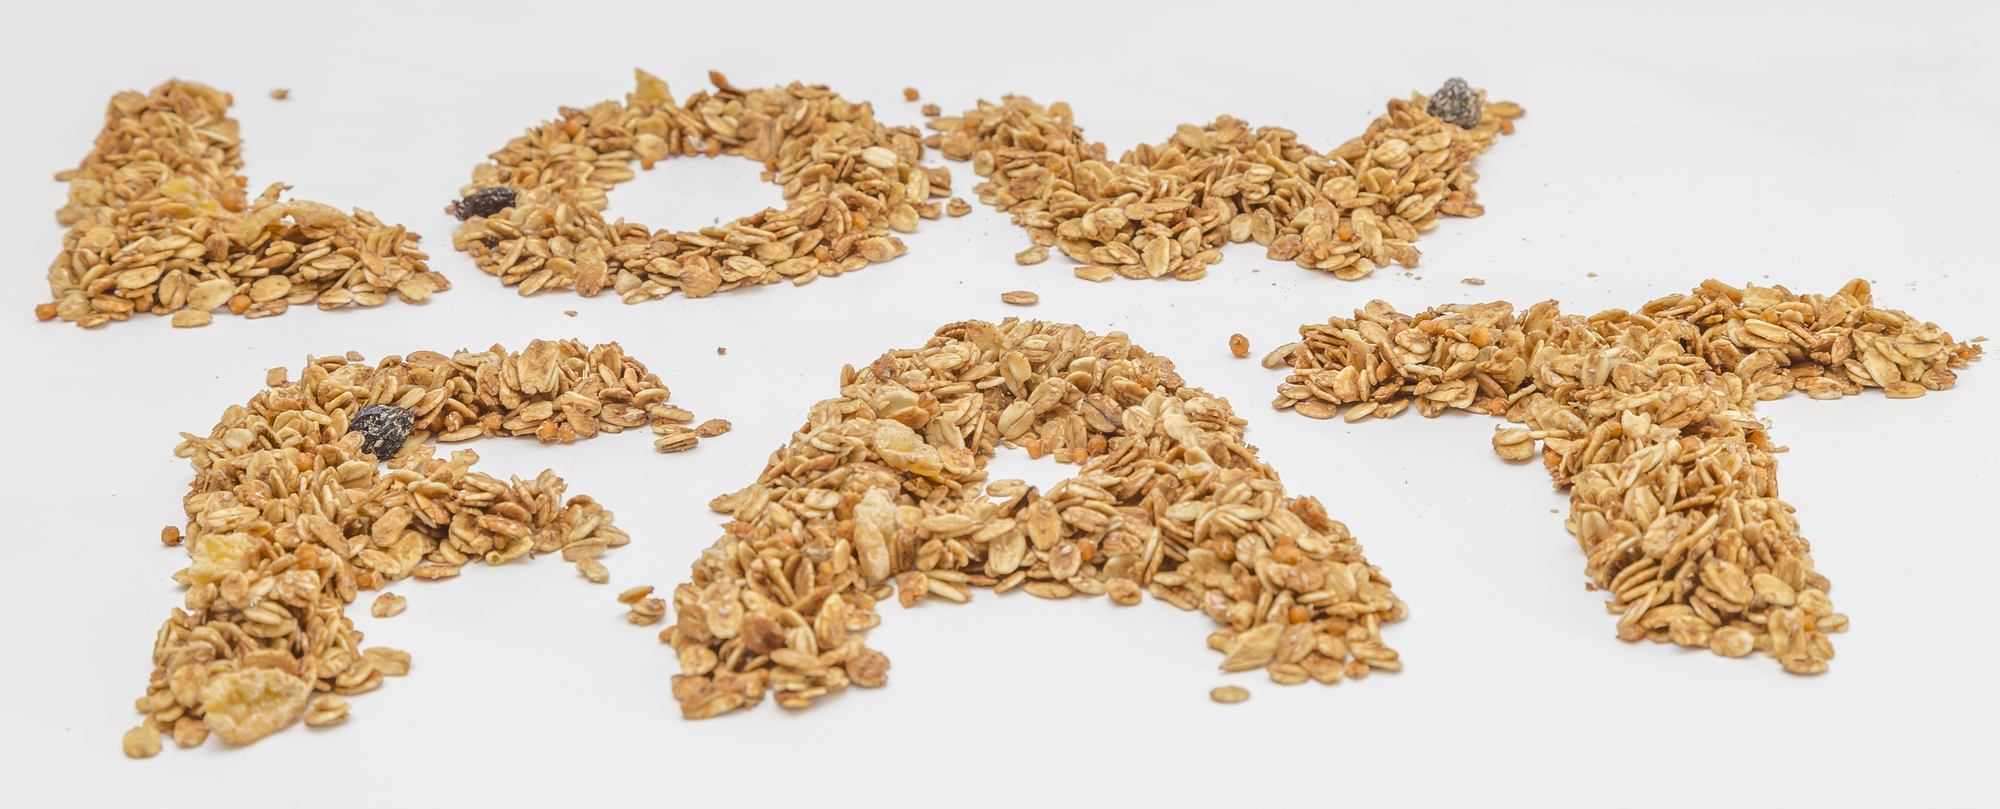 Low fat granola - Unhealthy Health Foods. Is There Such A Thing?